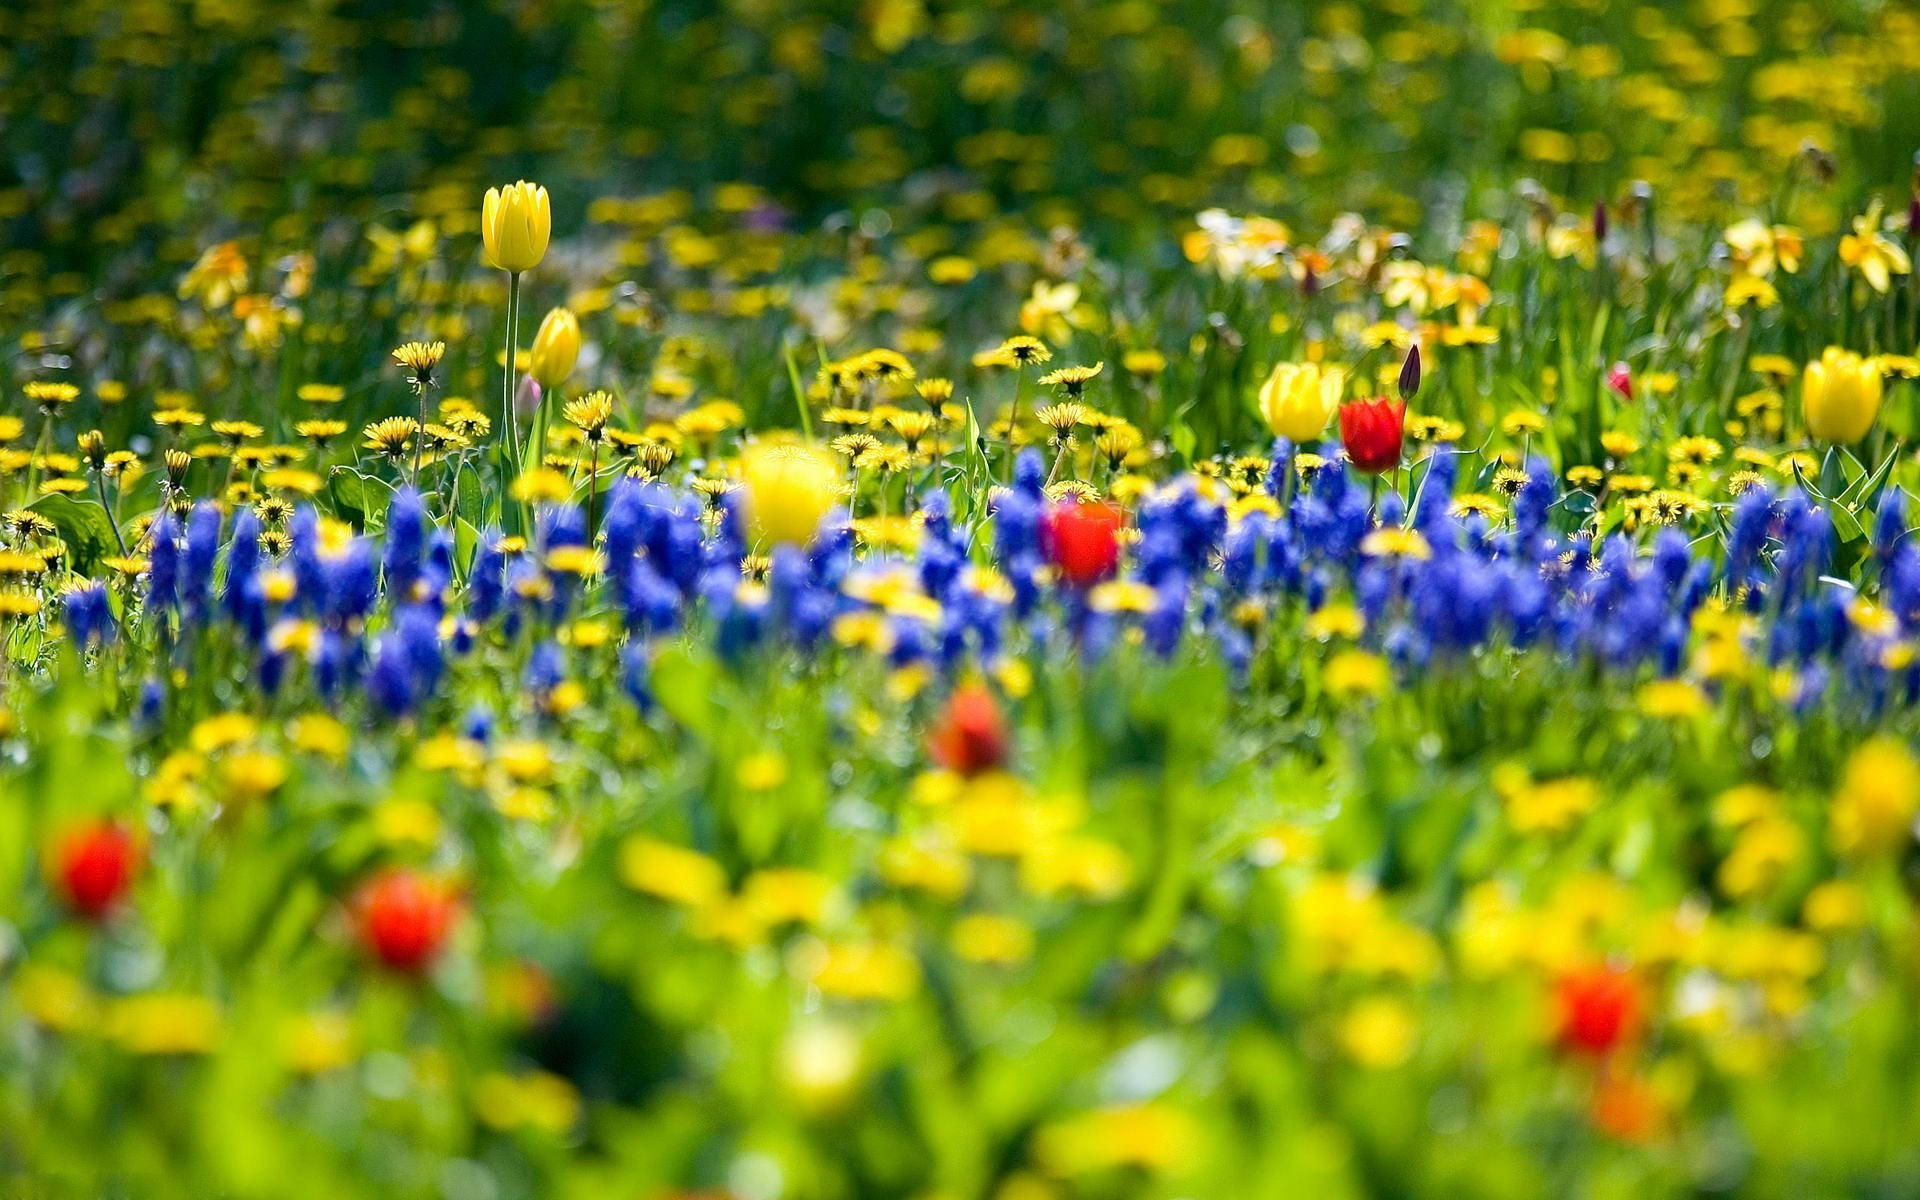 spring background wallpaper for computer free